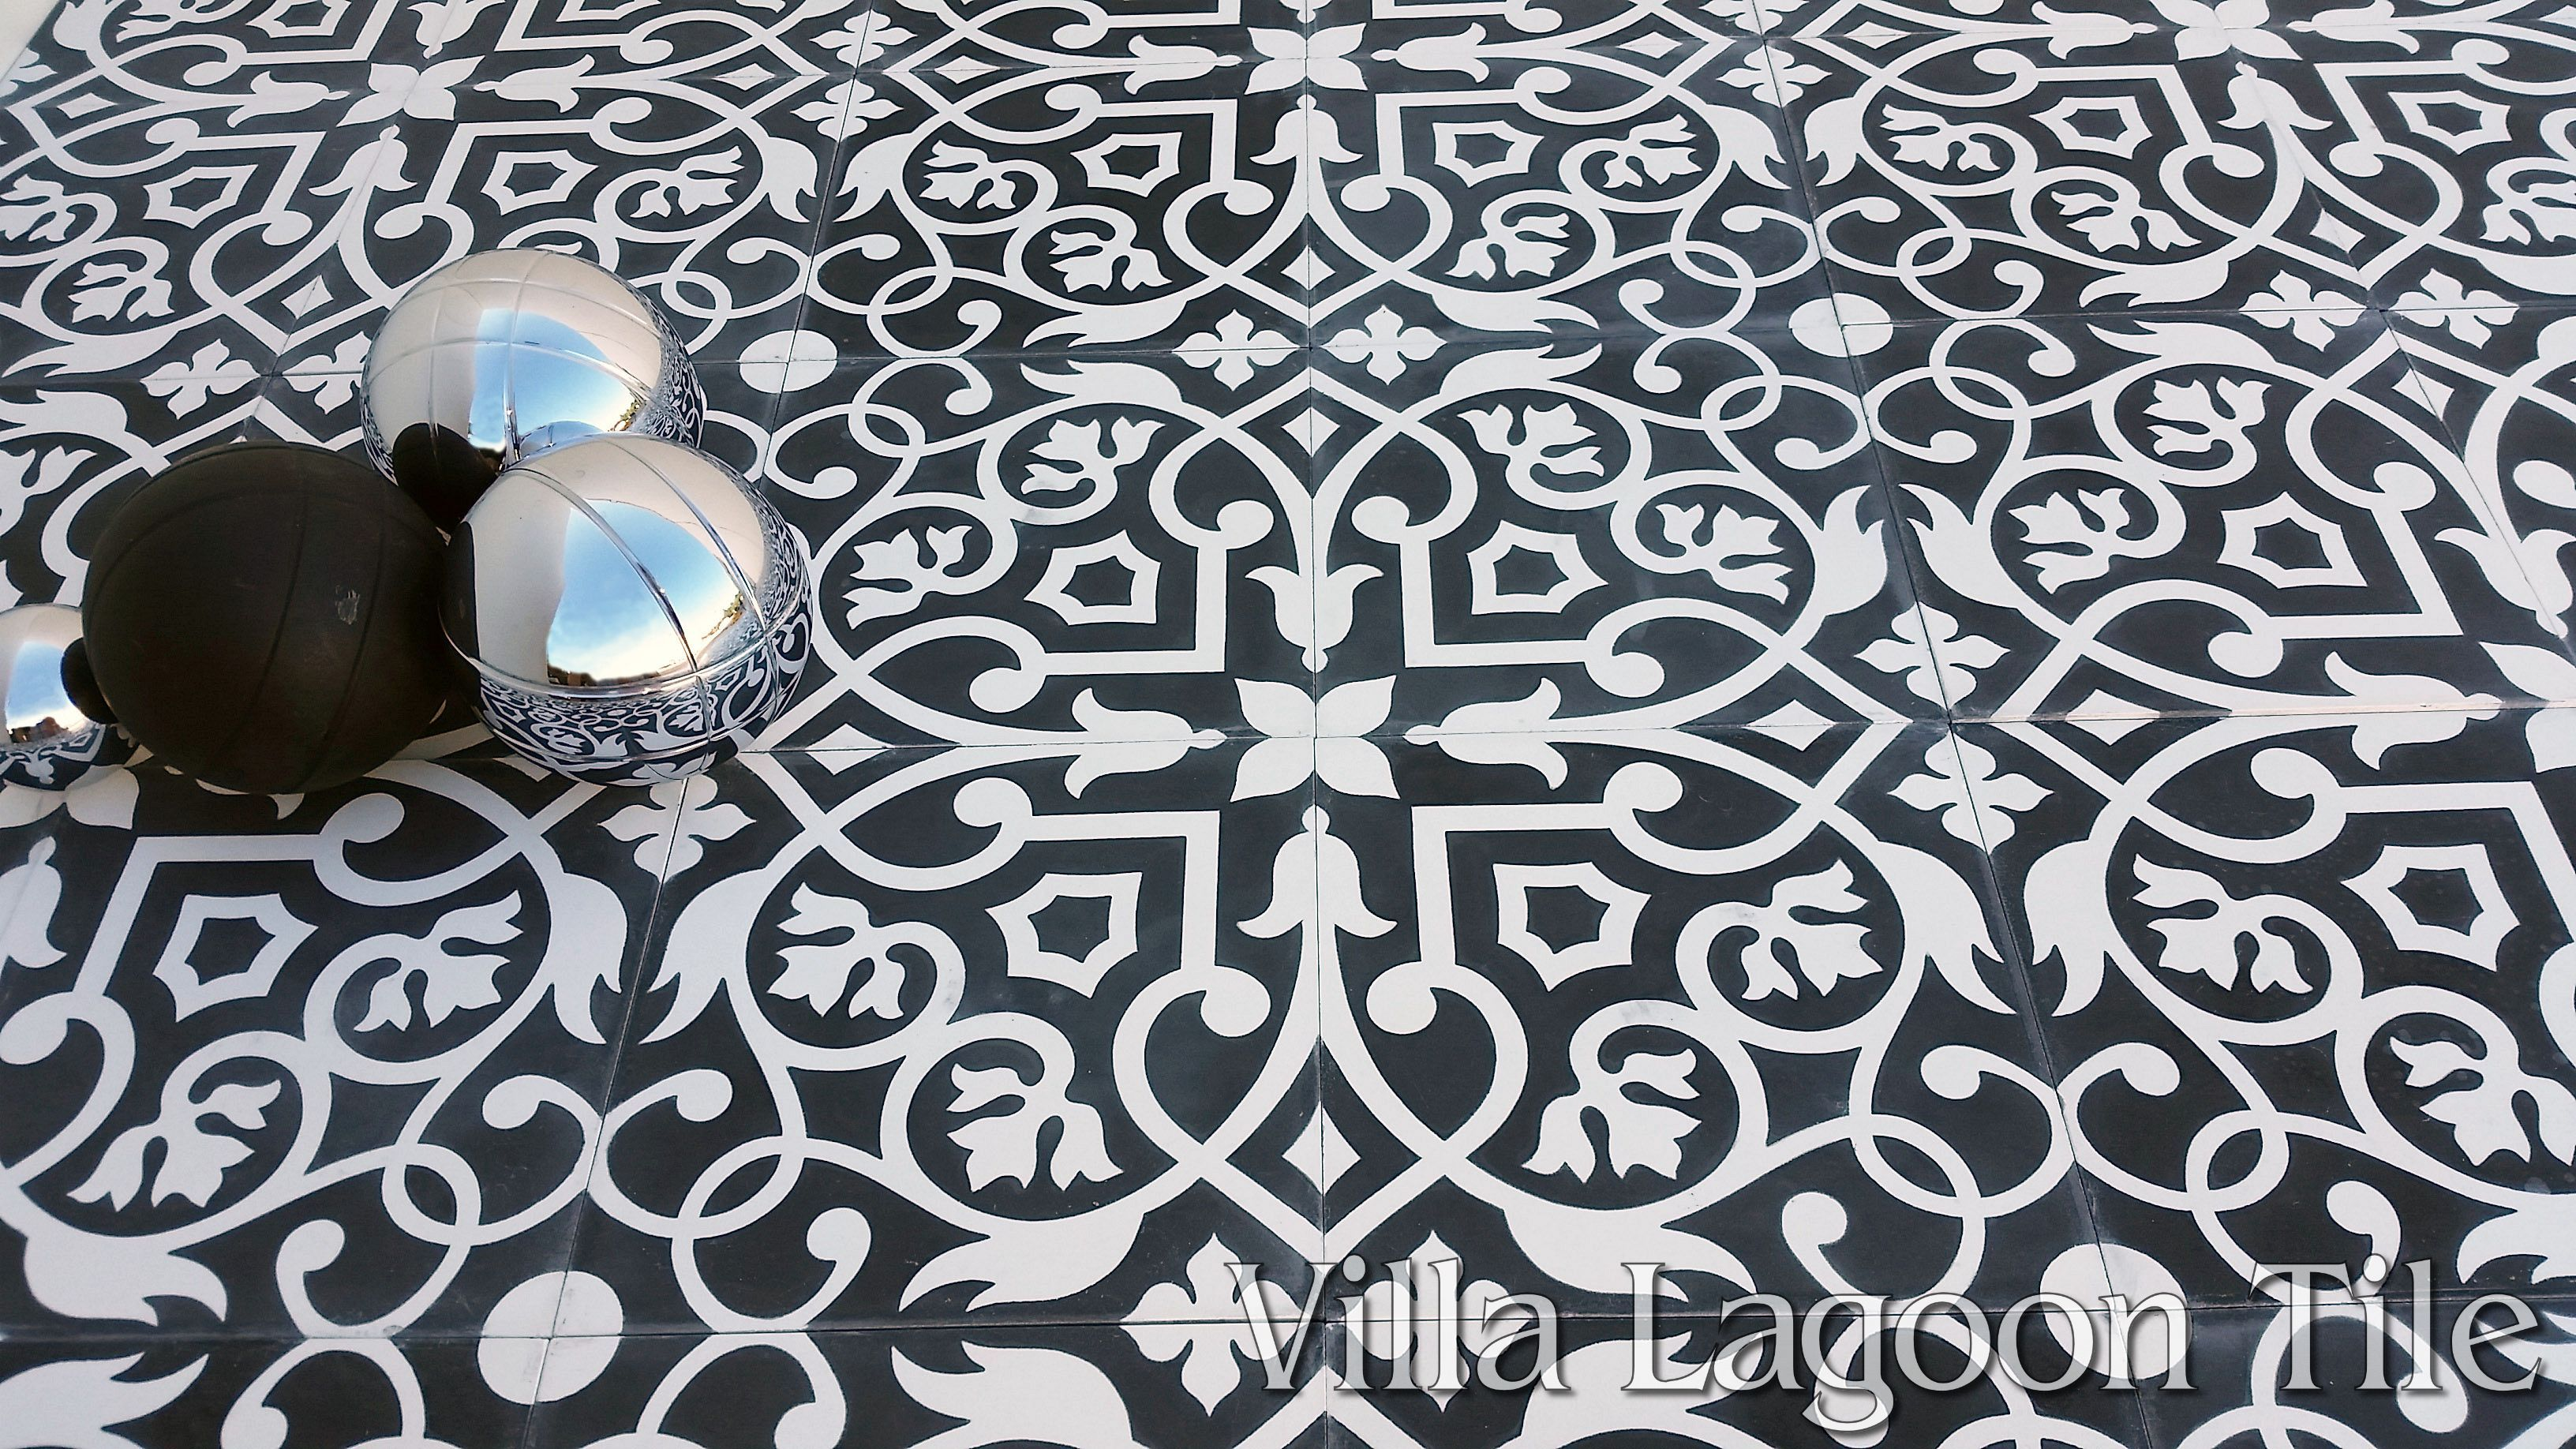 Gypsy black white cement tile villa lagoon tile click for larger image gypsy black white cement tile floor dailygadgetfo Gallery